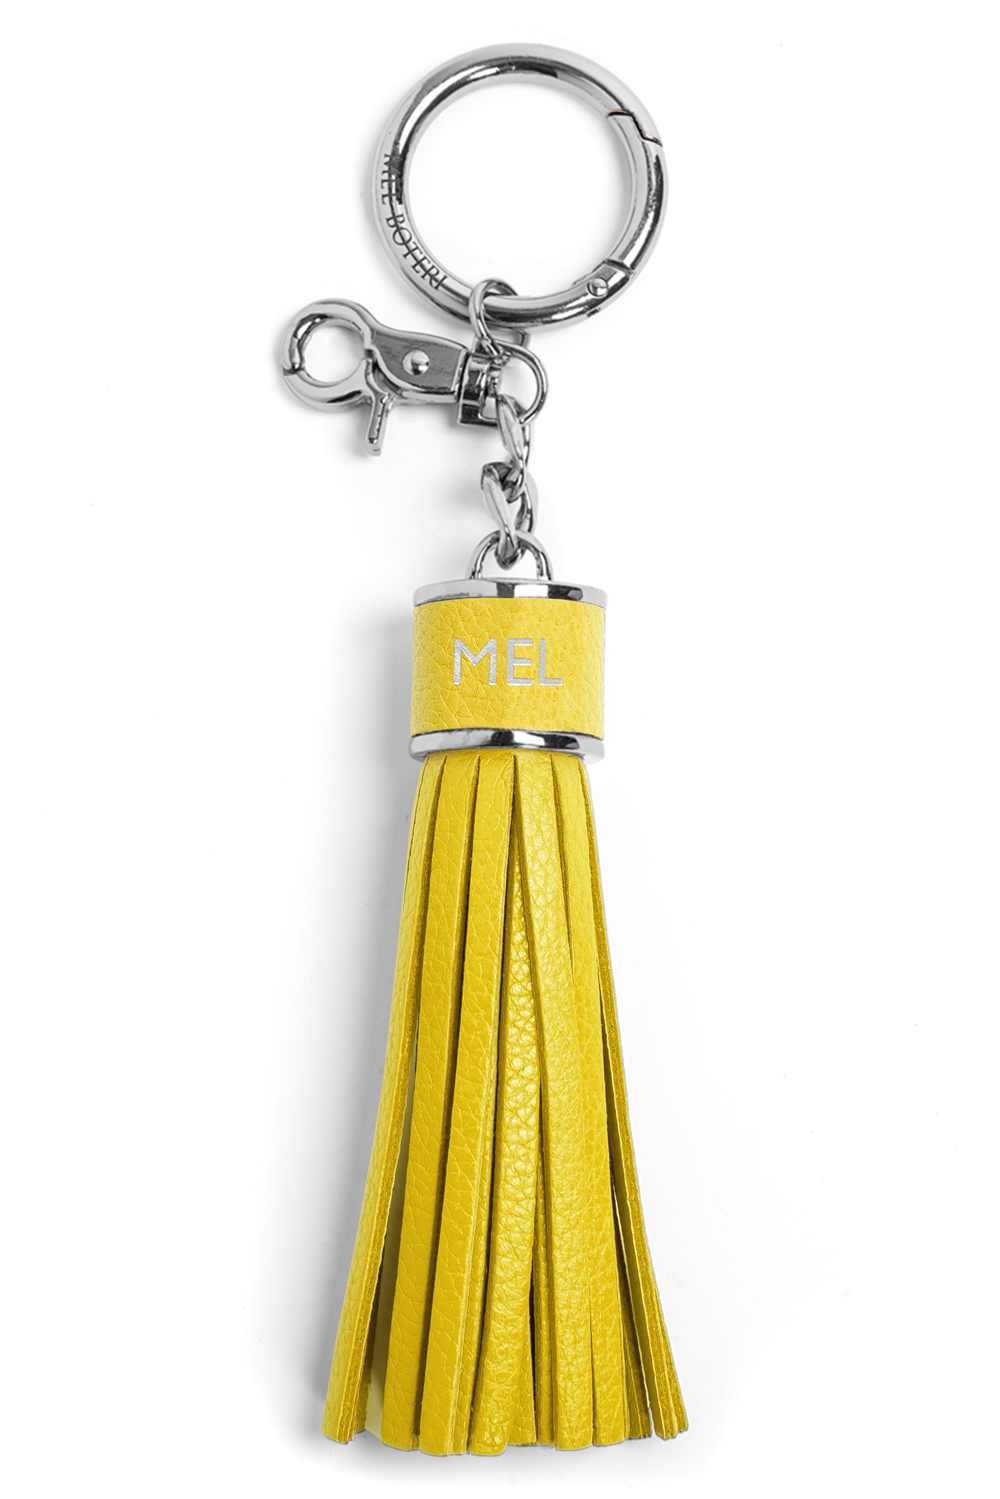 The Mel Boteri Pebbled-Leather Tassel Charm | Lemon Leather With Silver Hardware | Mel Boteri Gift Ideas